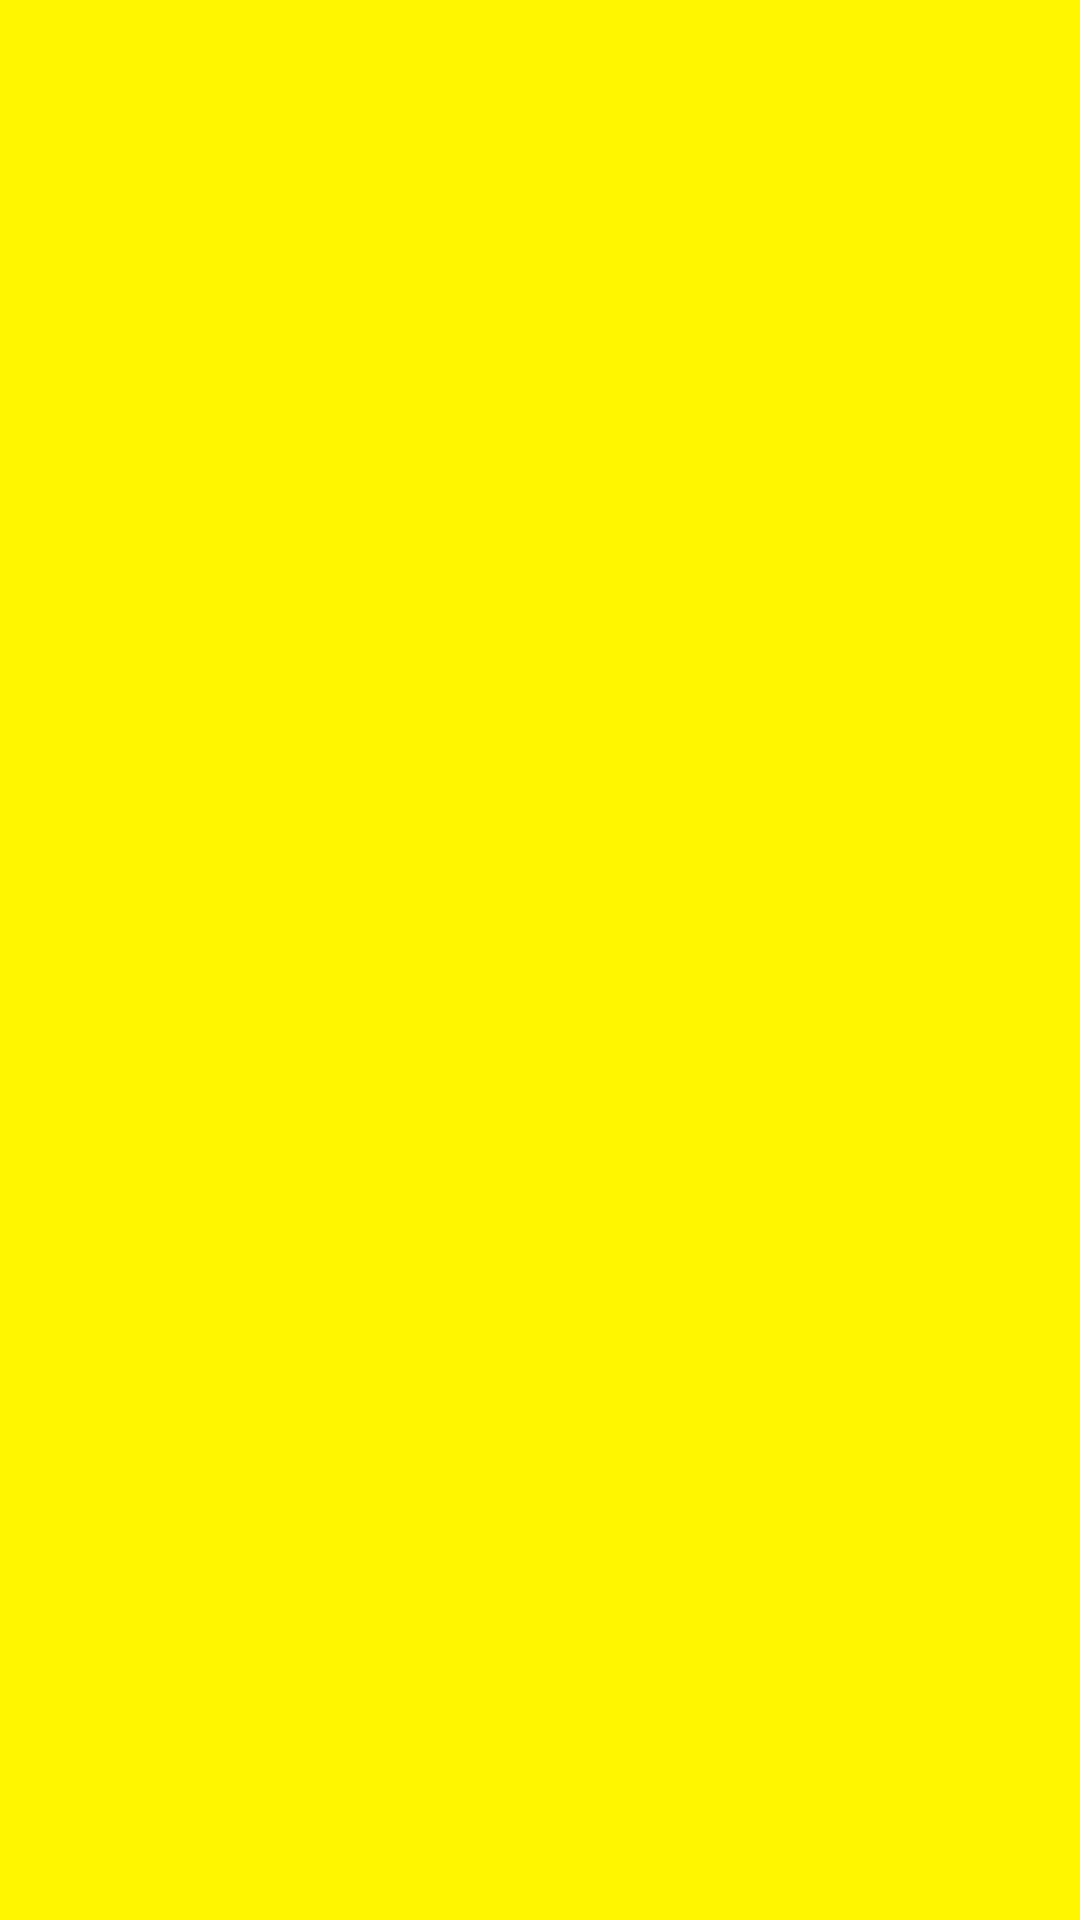 1080x1920 Cadmium Yellow Solid Color Background